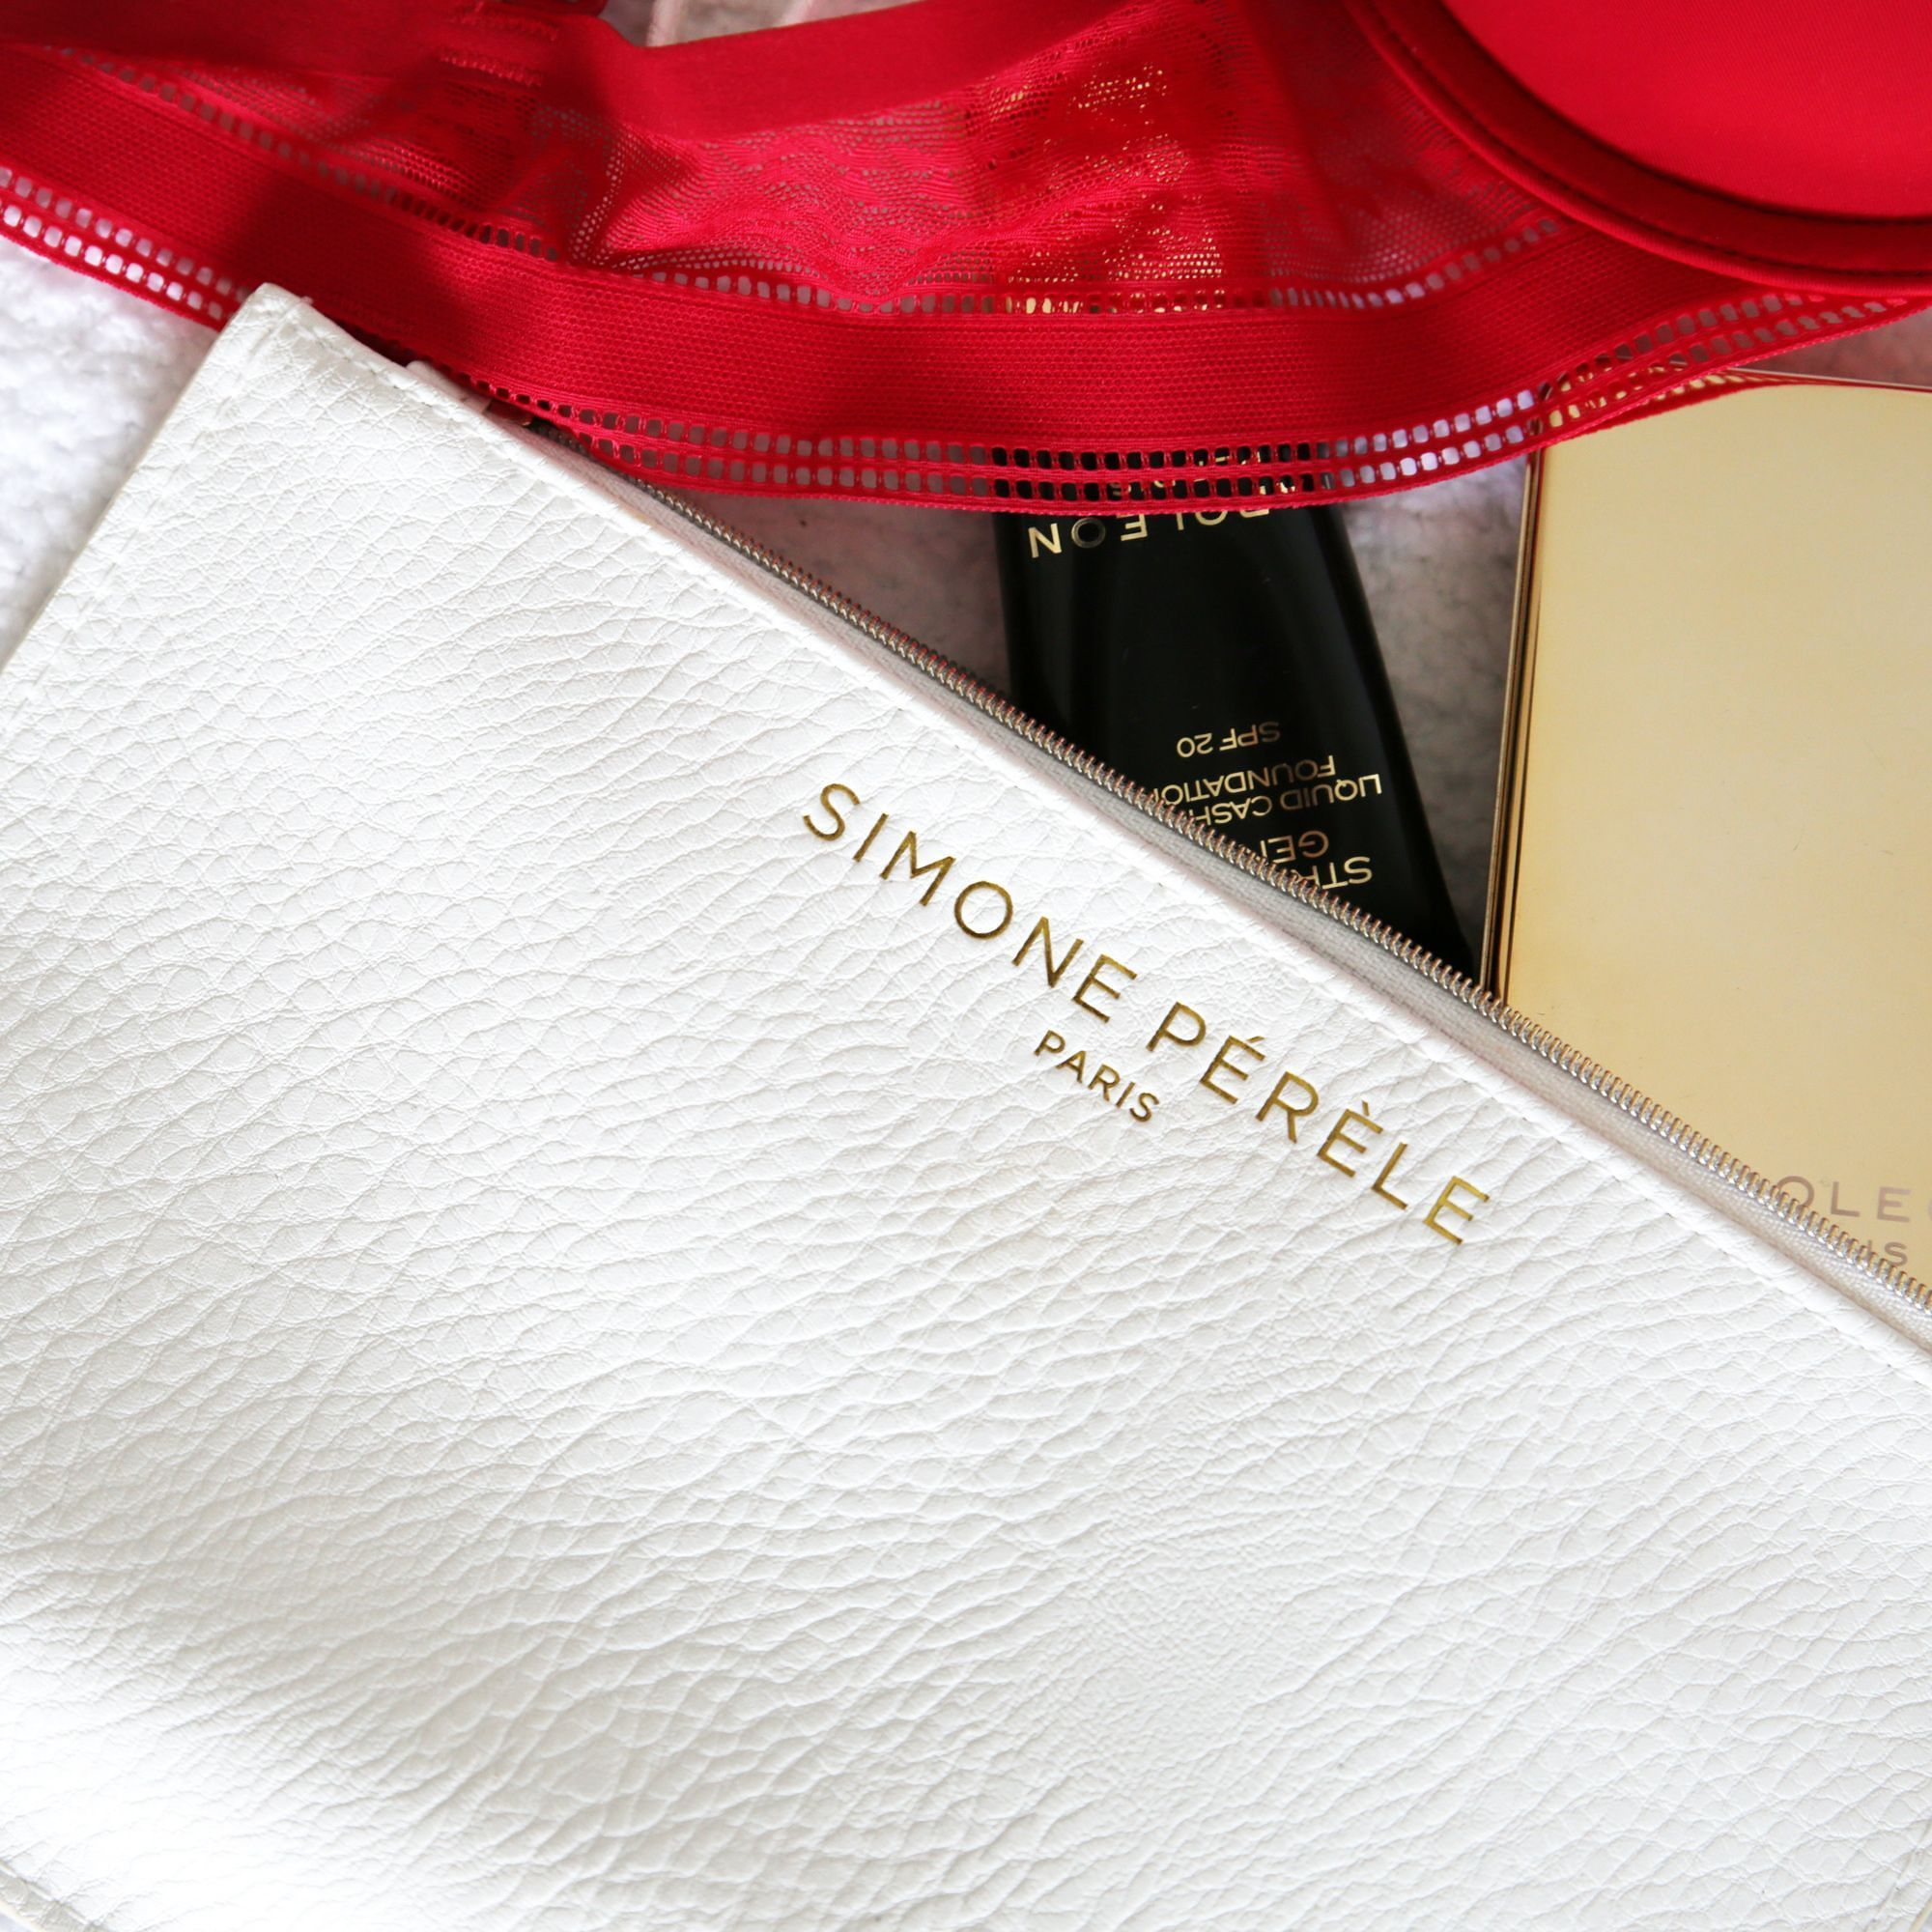 If you buy any Caresse range with your Amex card in David Jones youll get a free Simone Perele Cosmetics Clutch - Dont miss out!